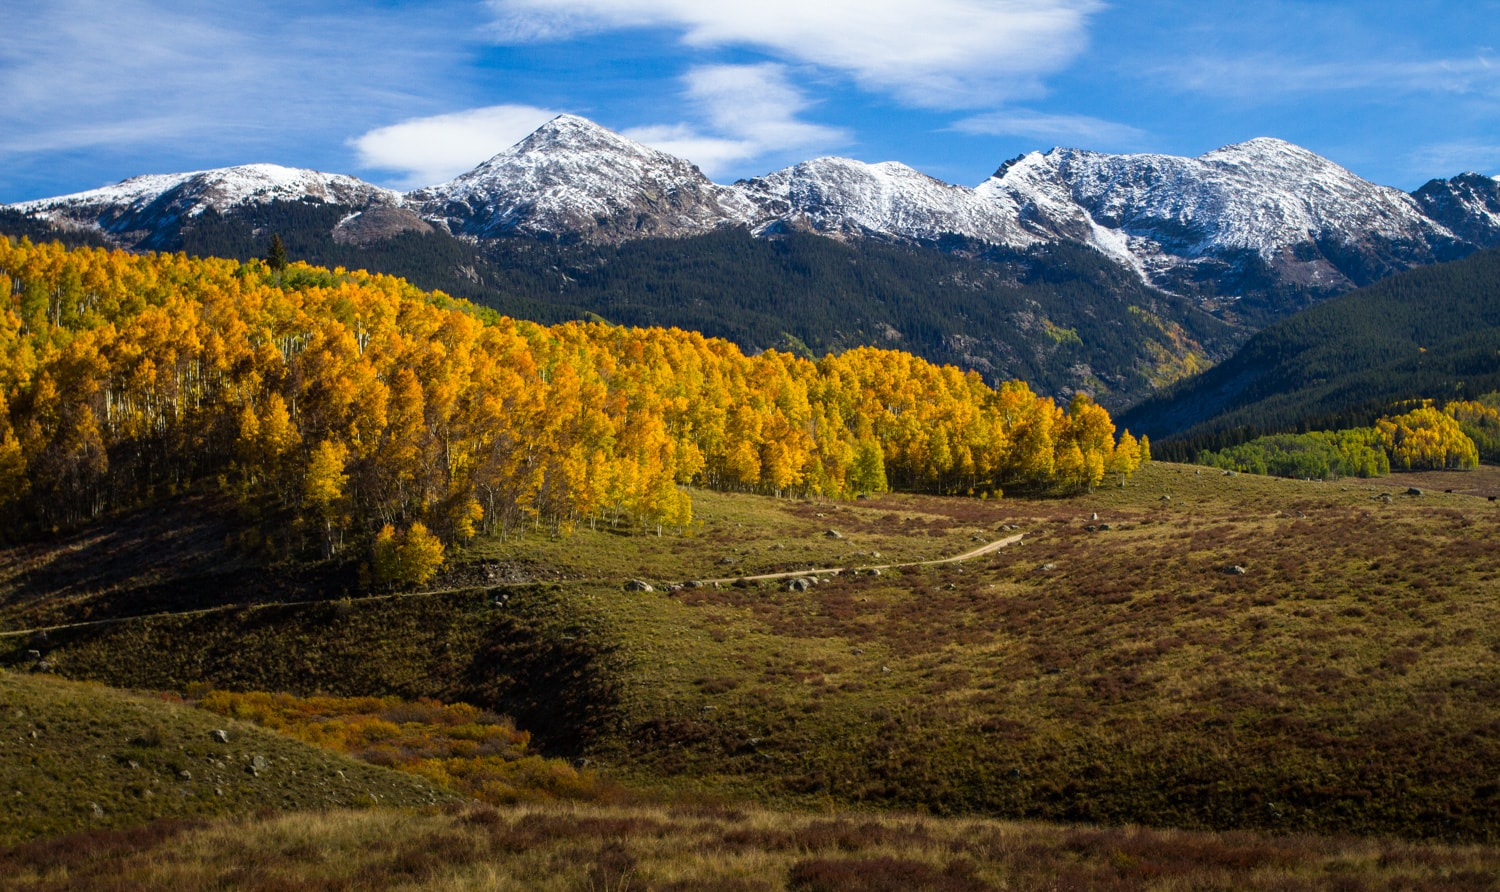 Lime Park // Experience vibrant fall Colorado colors with this road trip itinerary that takes you through some of the best aspen groves in the state.